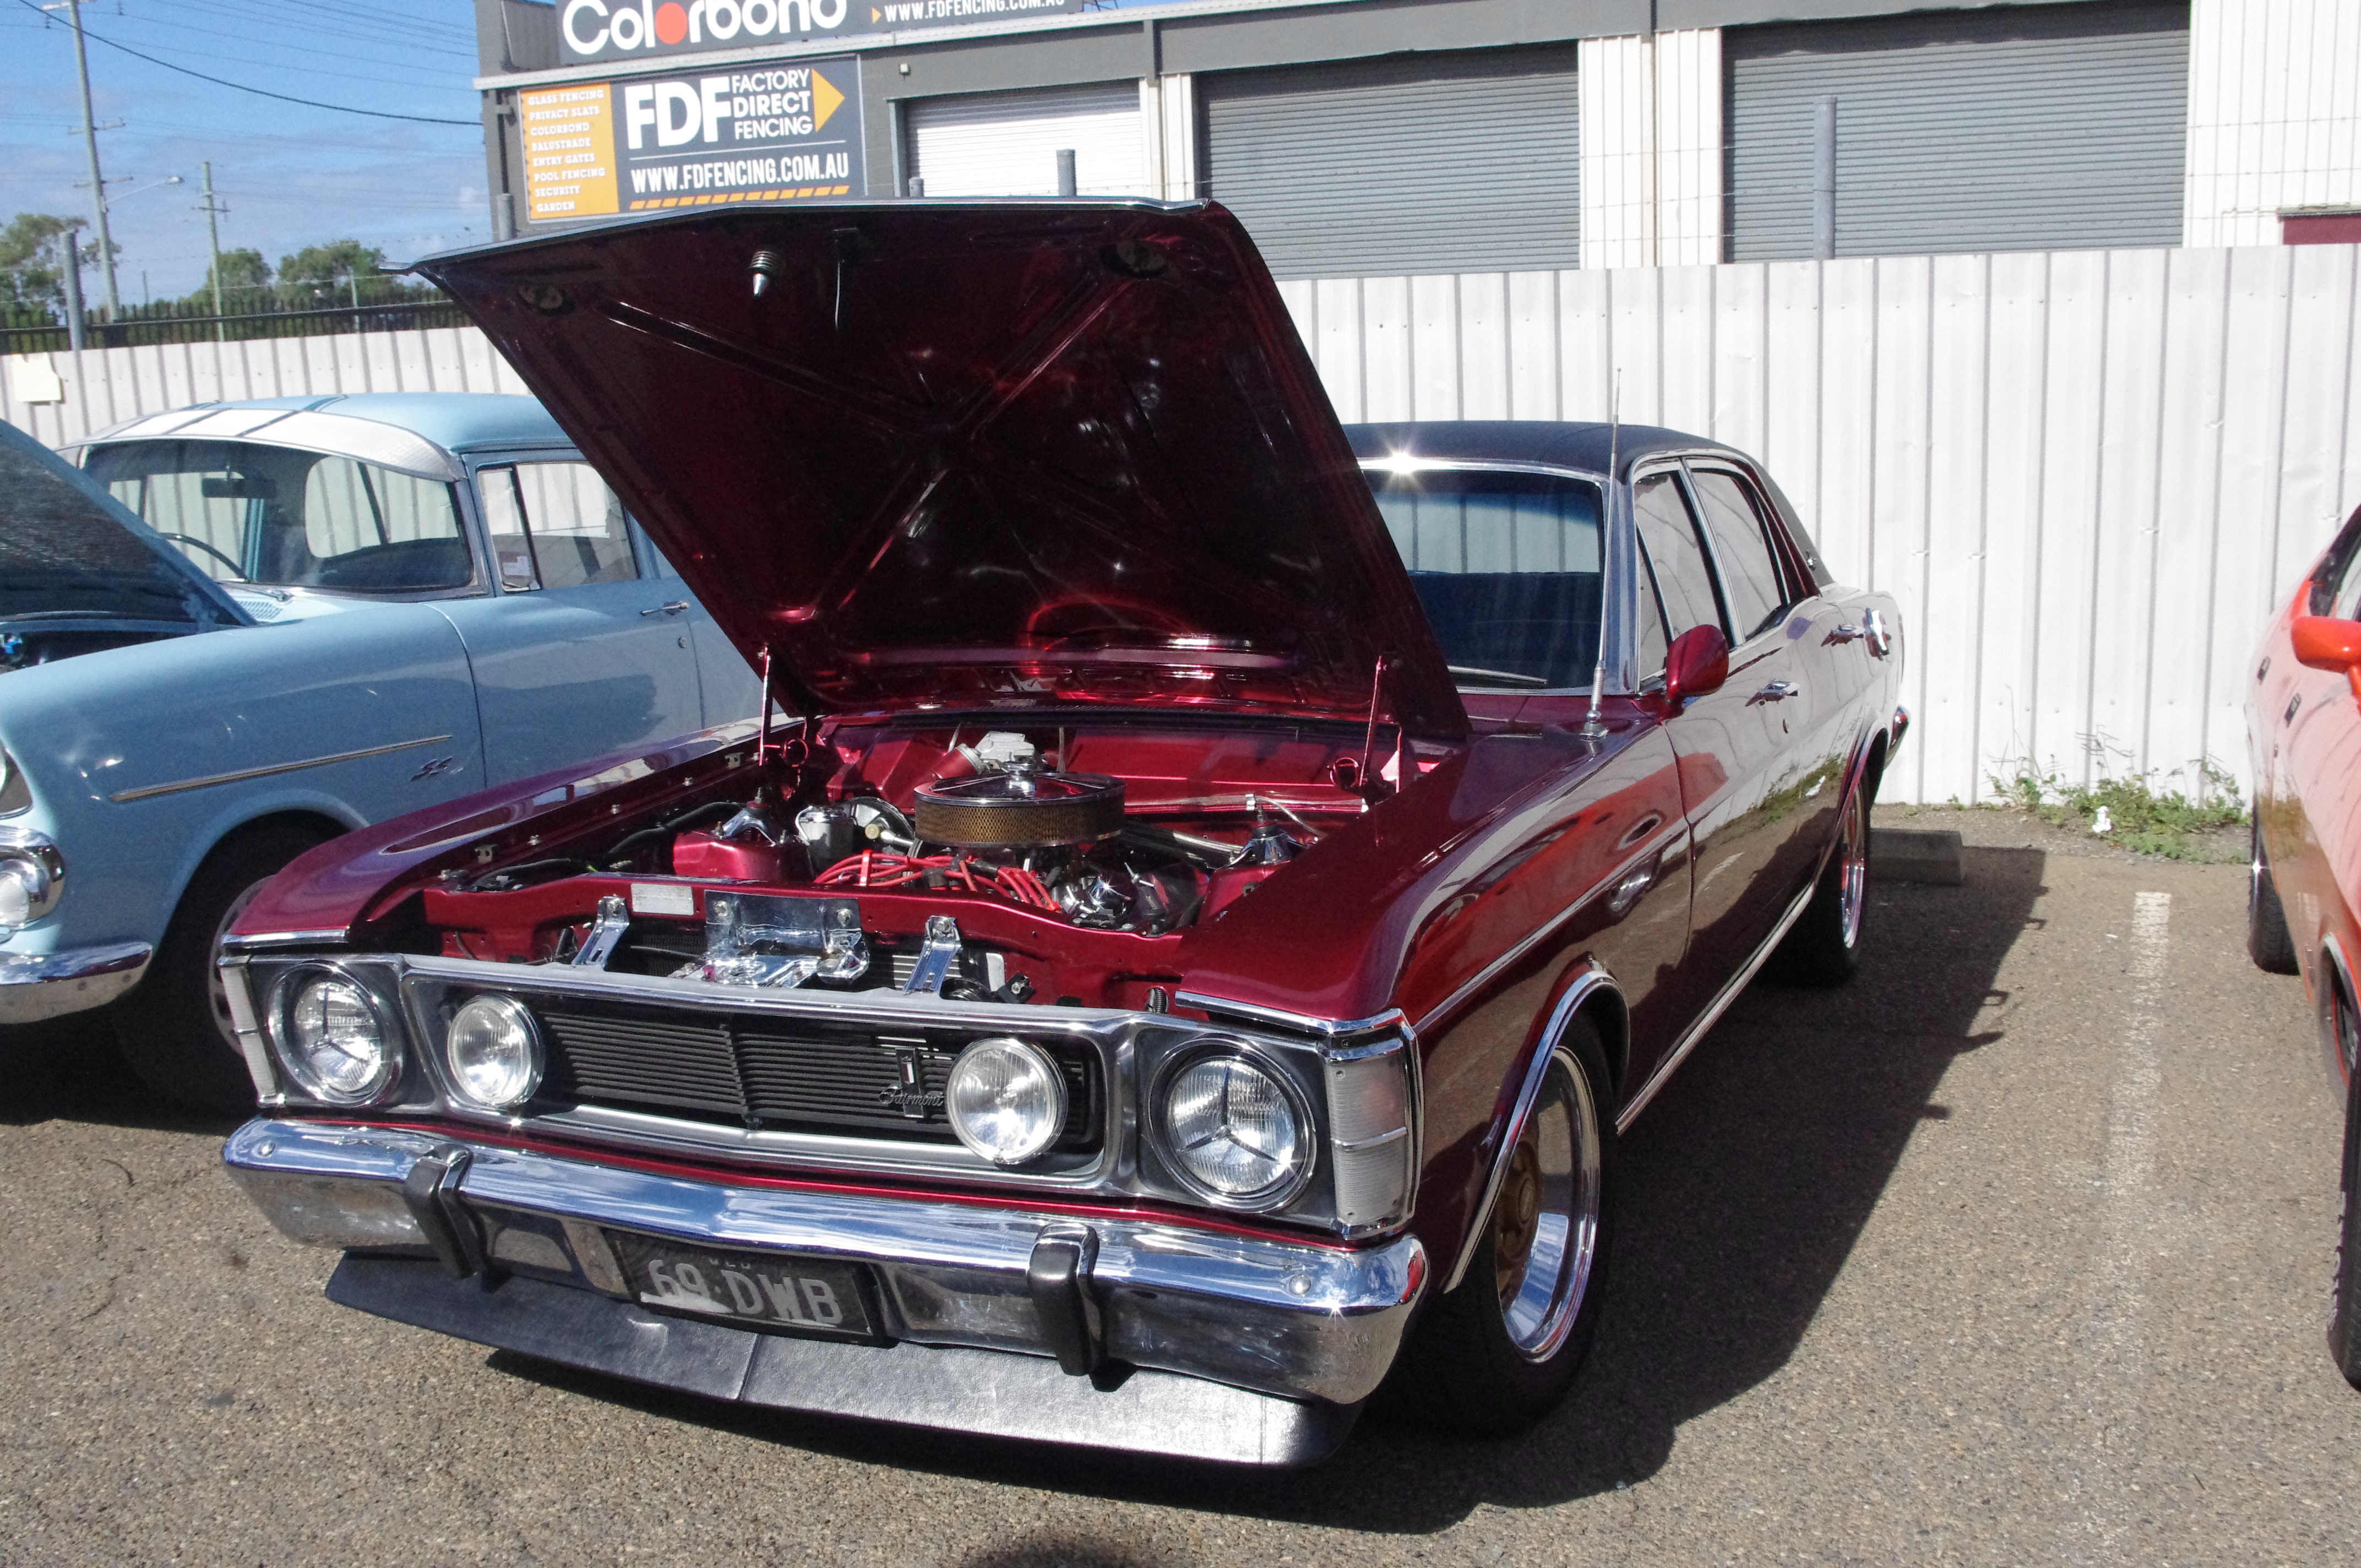 2014 Photo Album - Resurrected Relics Show \'n Shine 18 May 2014